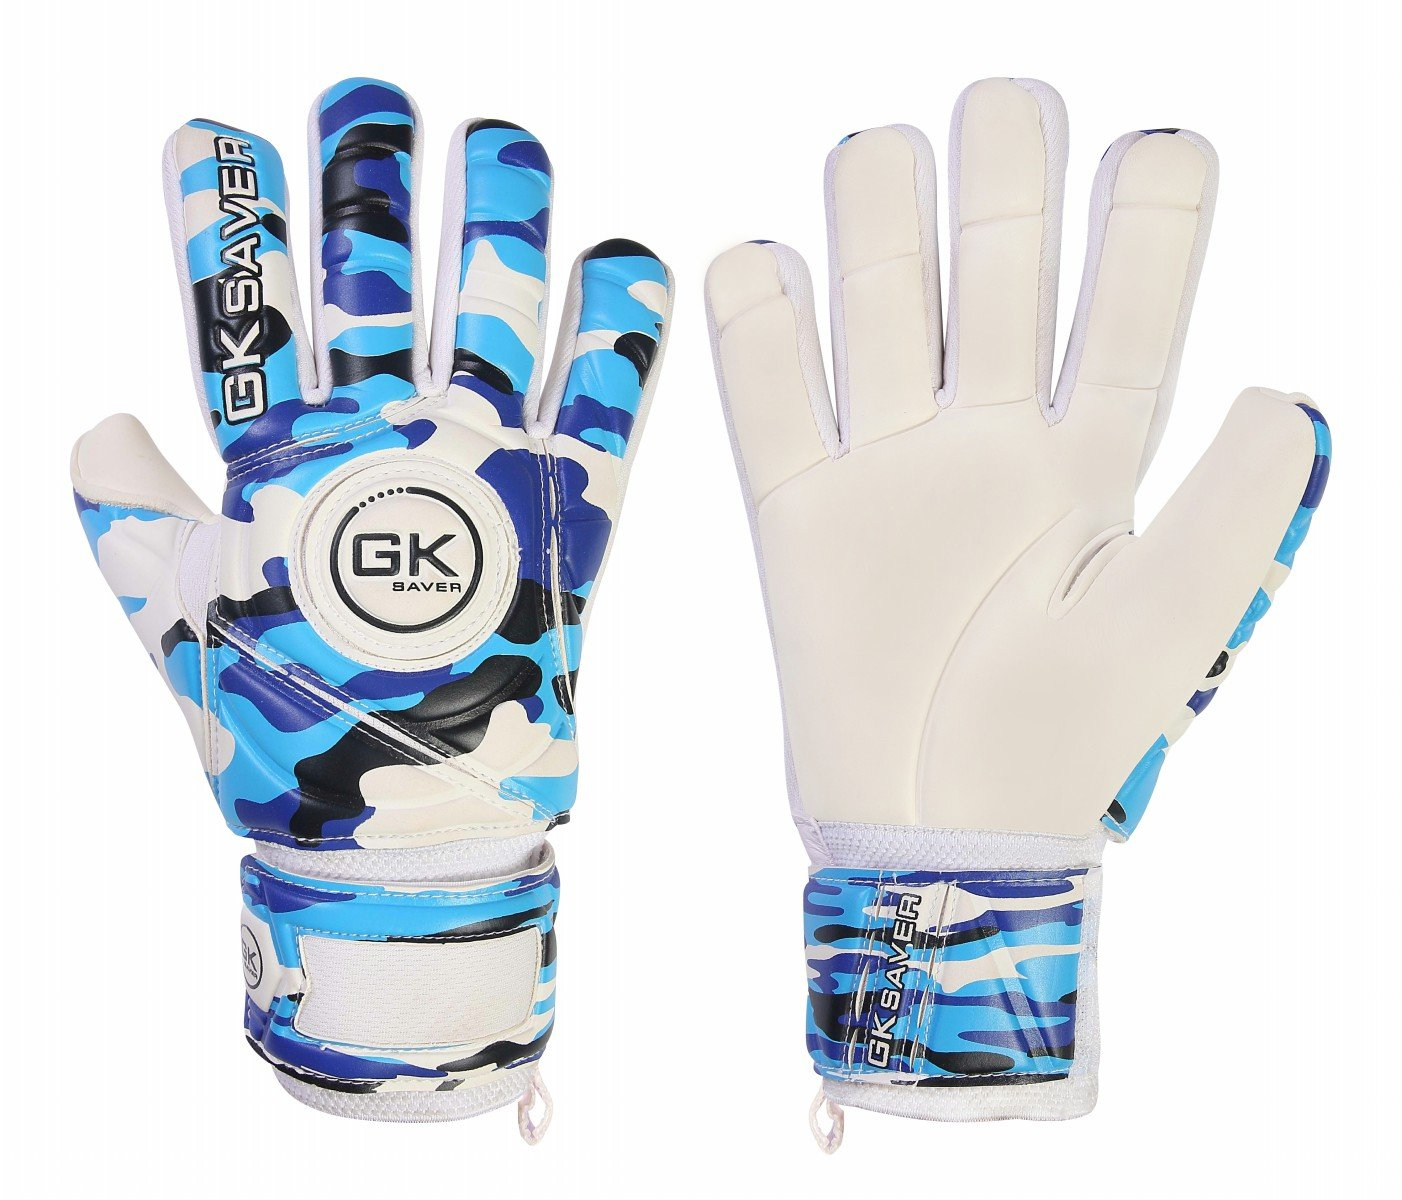 GKセーバーサッカーゴールキーパーGoalie Camoブルー負カットGoalie Gloves Kids FS B07C9W7CJLYES Finger Protection YES Personalization Size 4